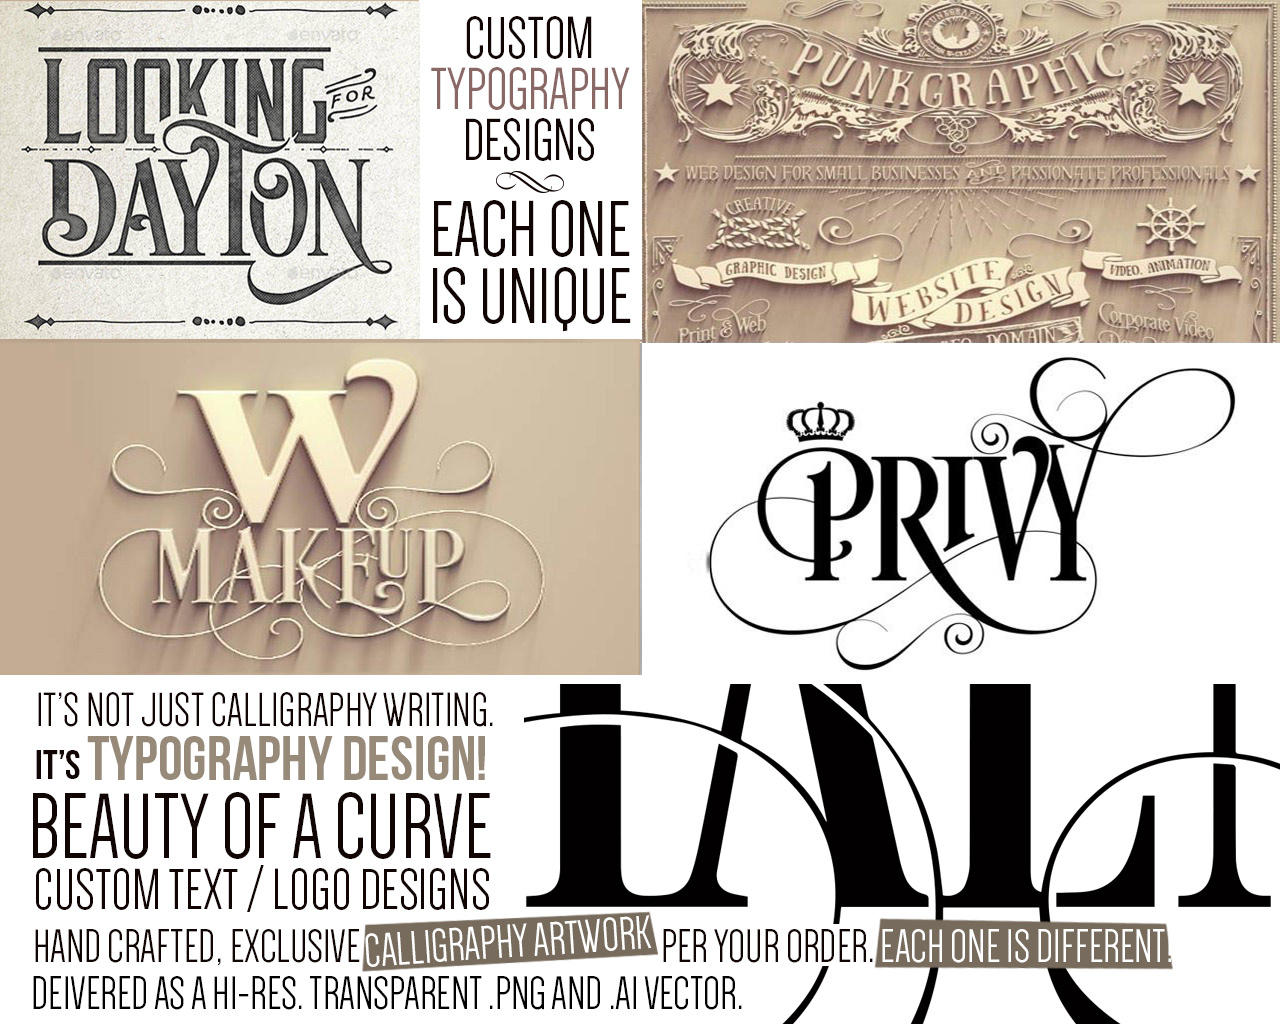 Custom Calligraphy / Typography Design With Graphic Elements by scarab13 - 110318